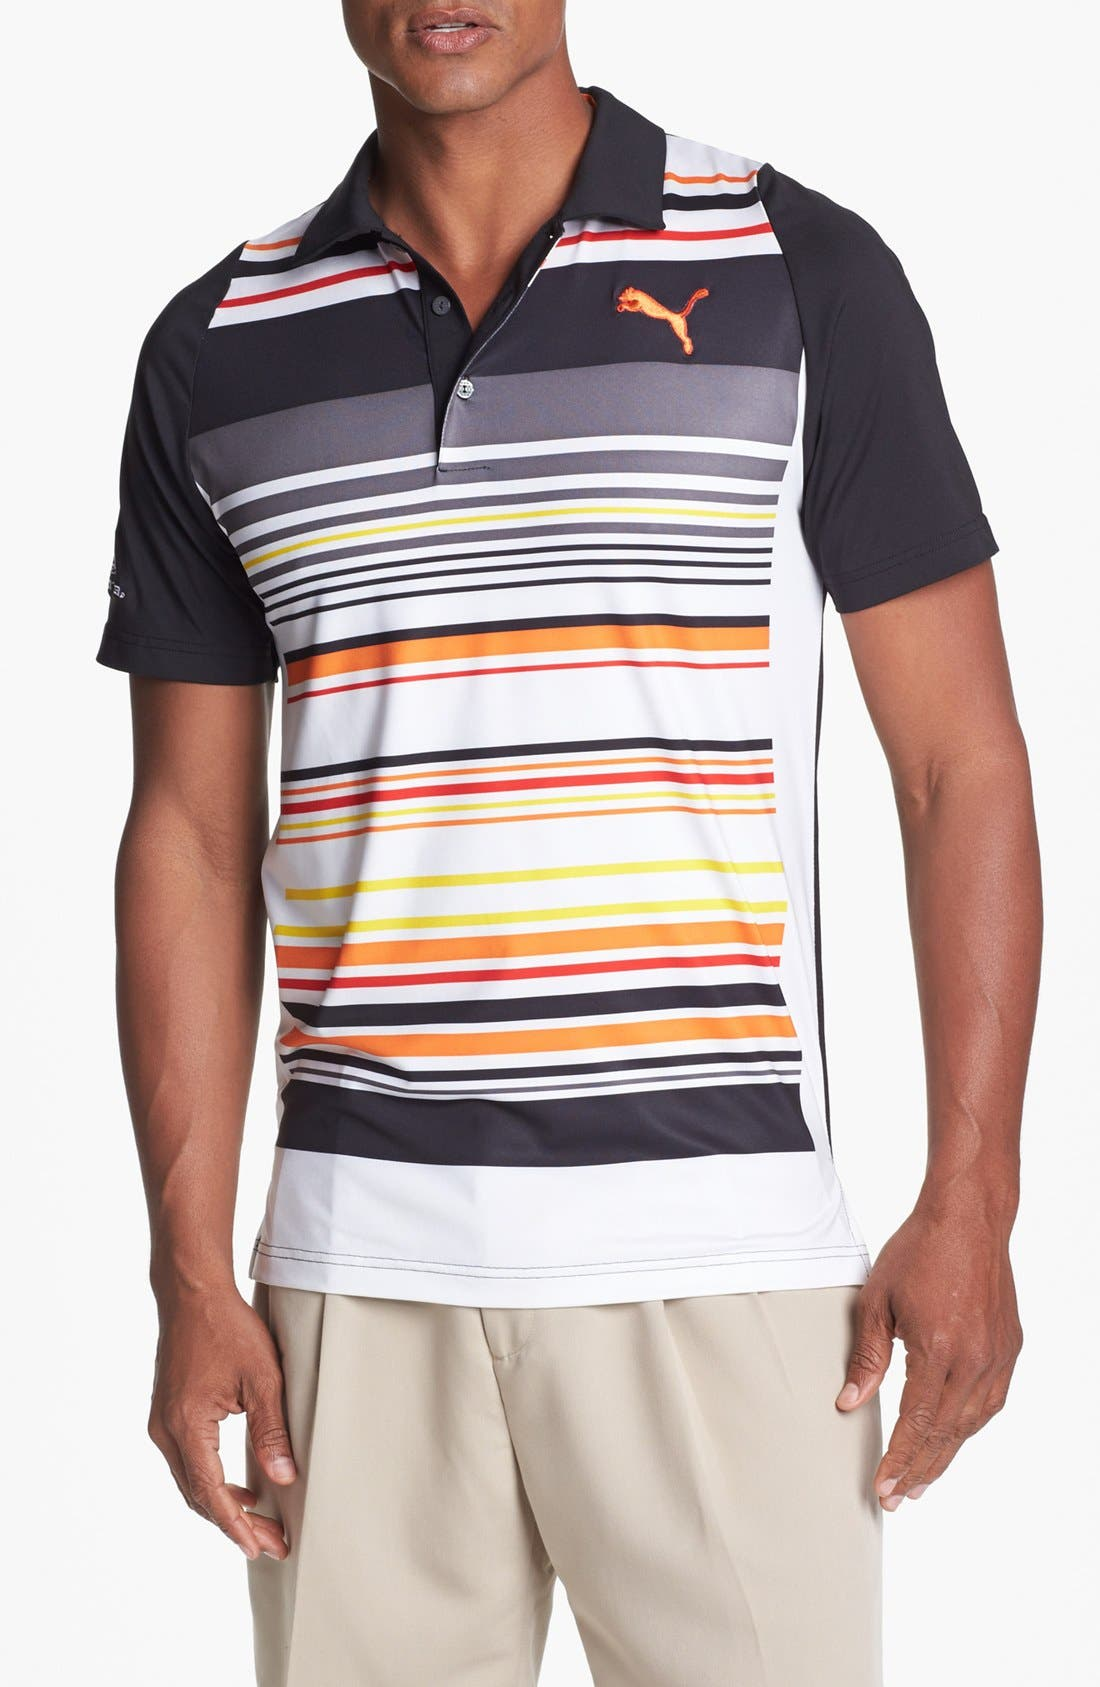 Main Image - PUMA GOLF 'Duo-Swing' Stripe Polo